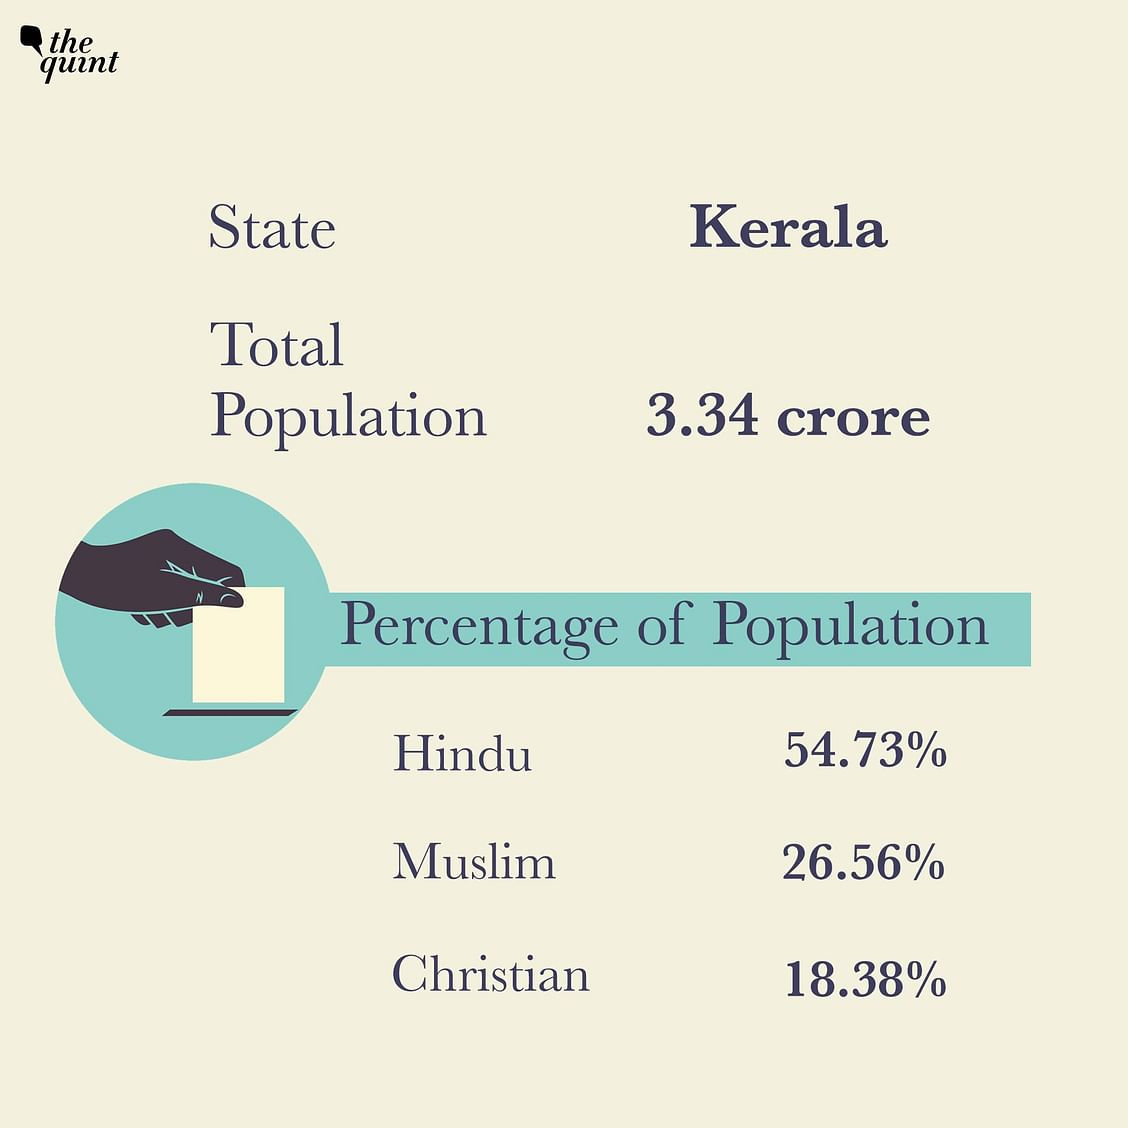 Christians form 18.38 per cent of the population in Kerala.